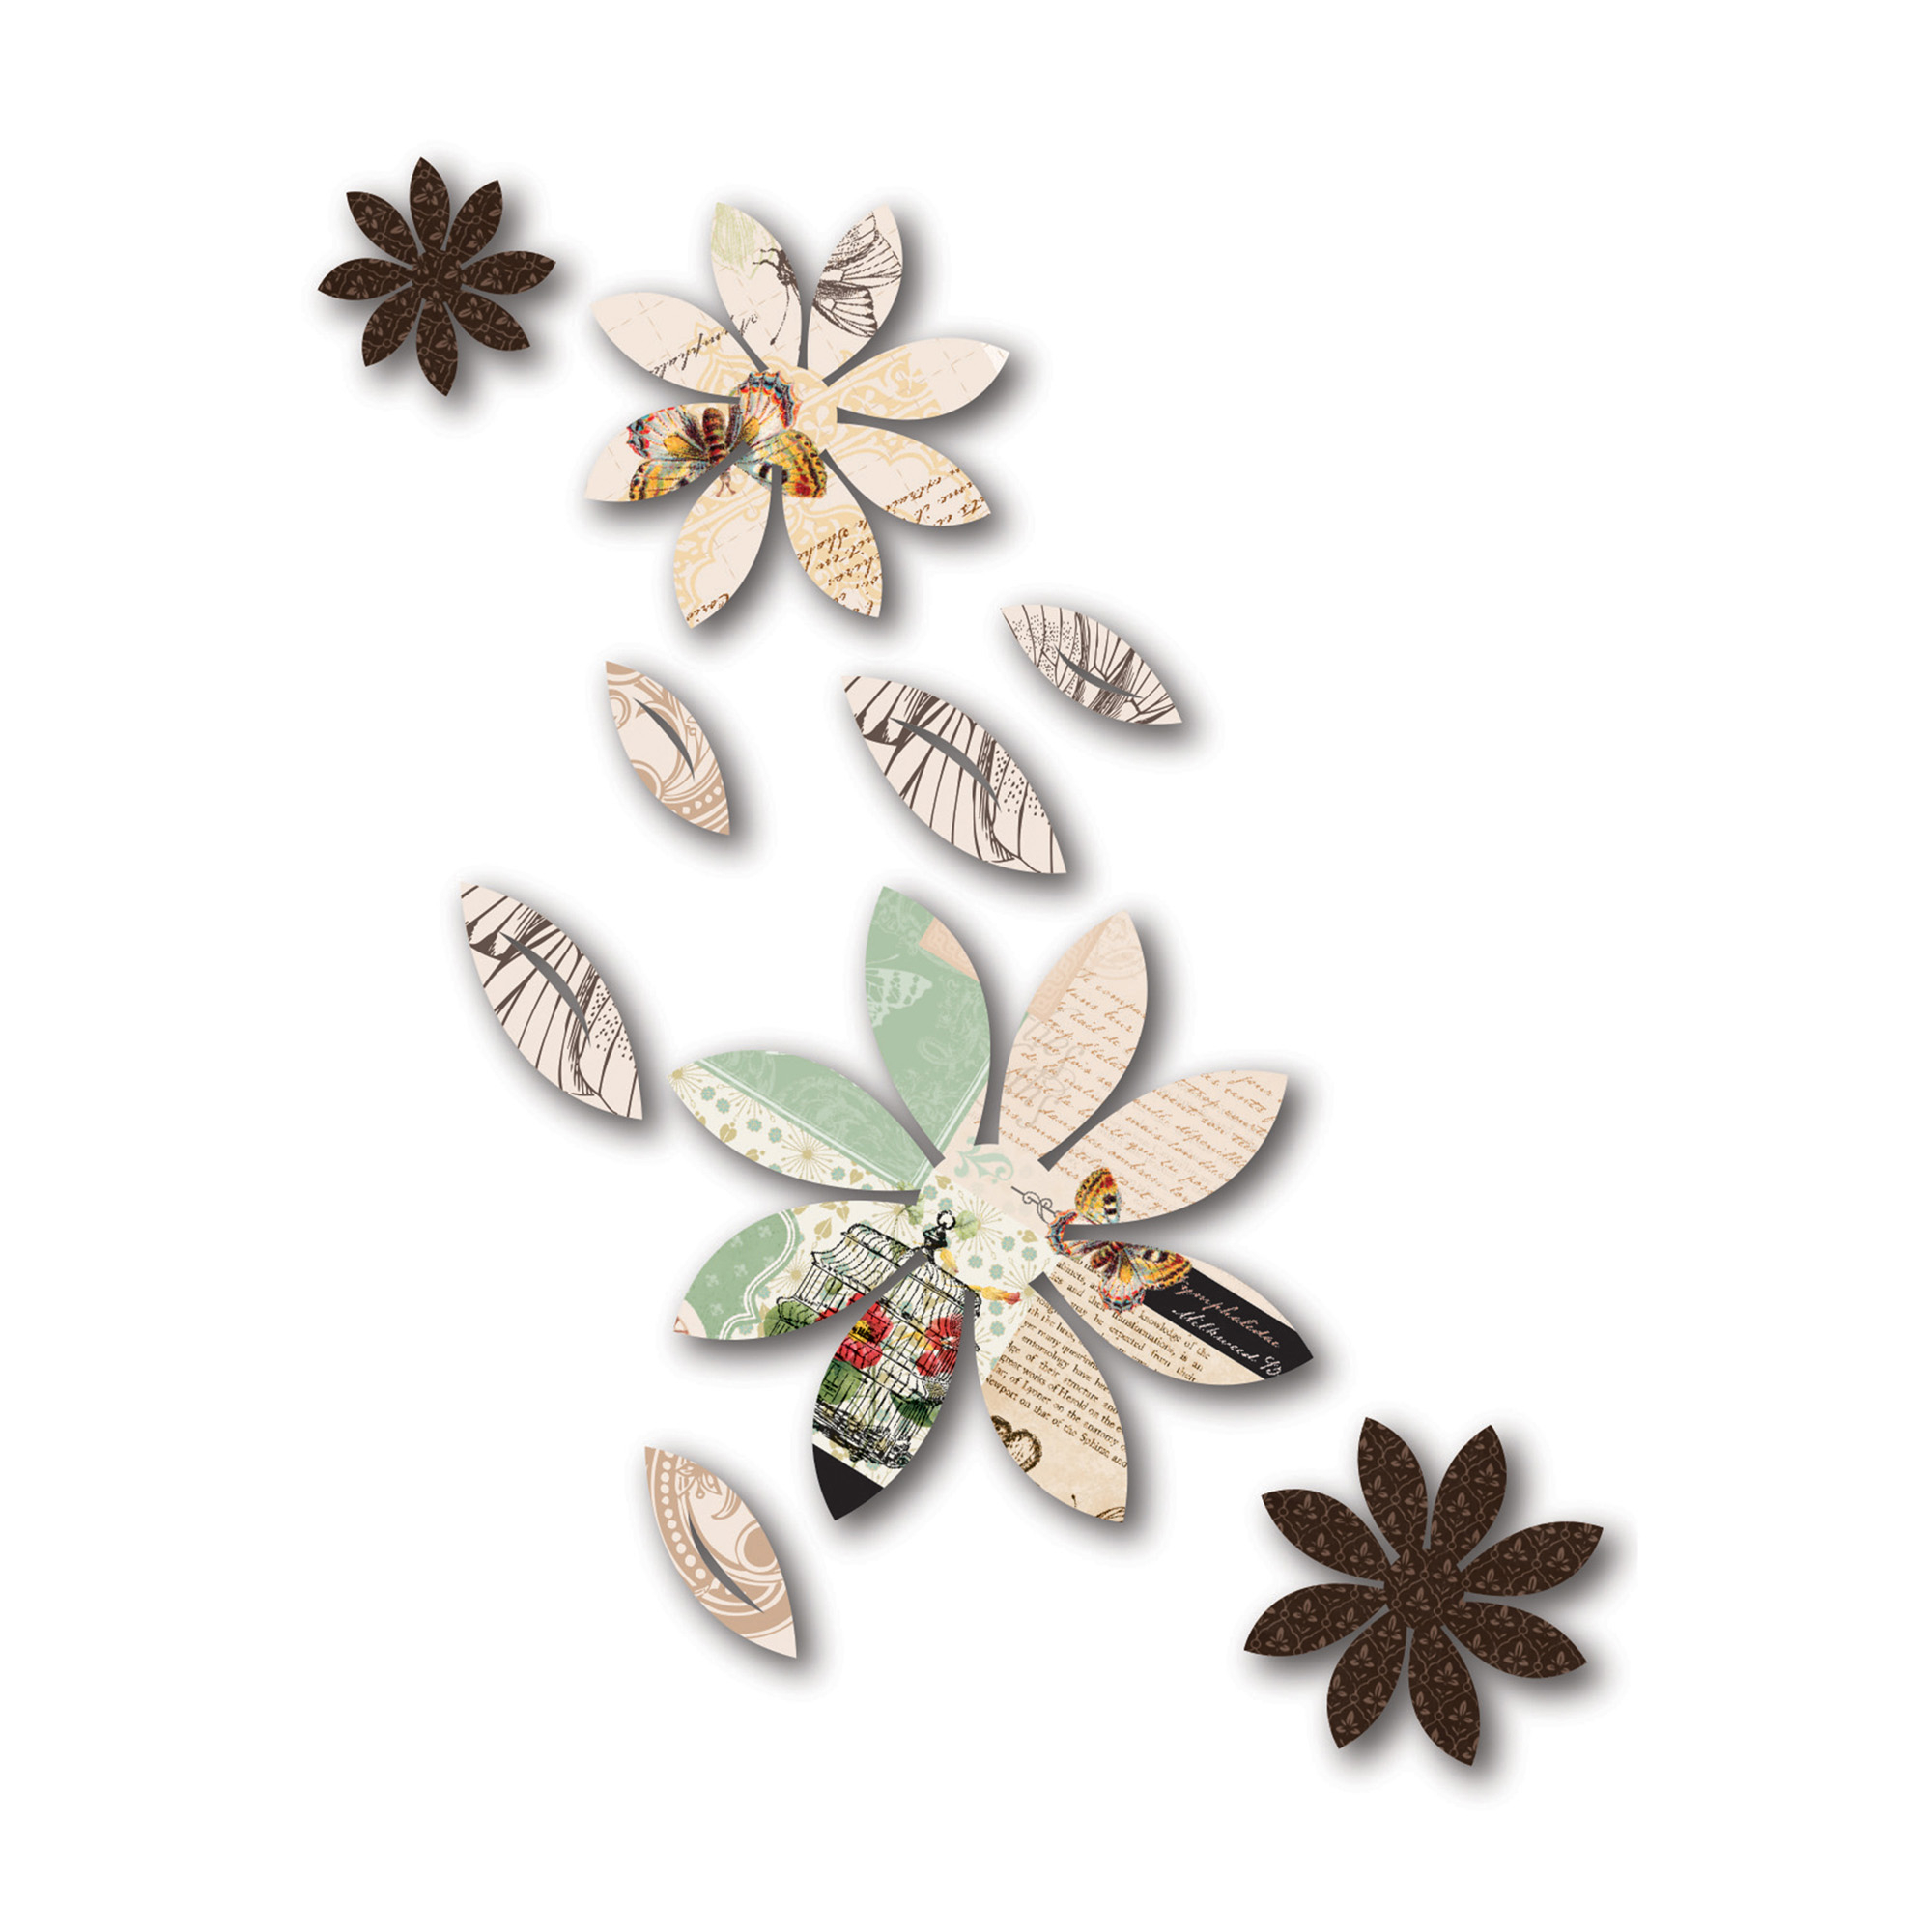 3D Wall Decor Brown Flowers With Mariposa Print, 9 Piece – Walmart With Regard To Trendy Mariposa 9 Piece Wall Decor (View 3 of 20)